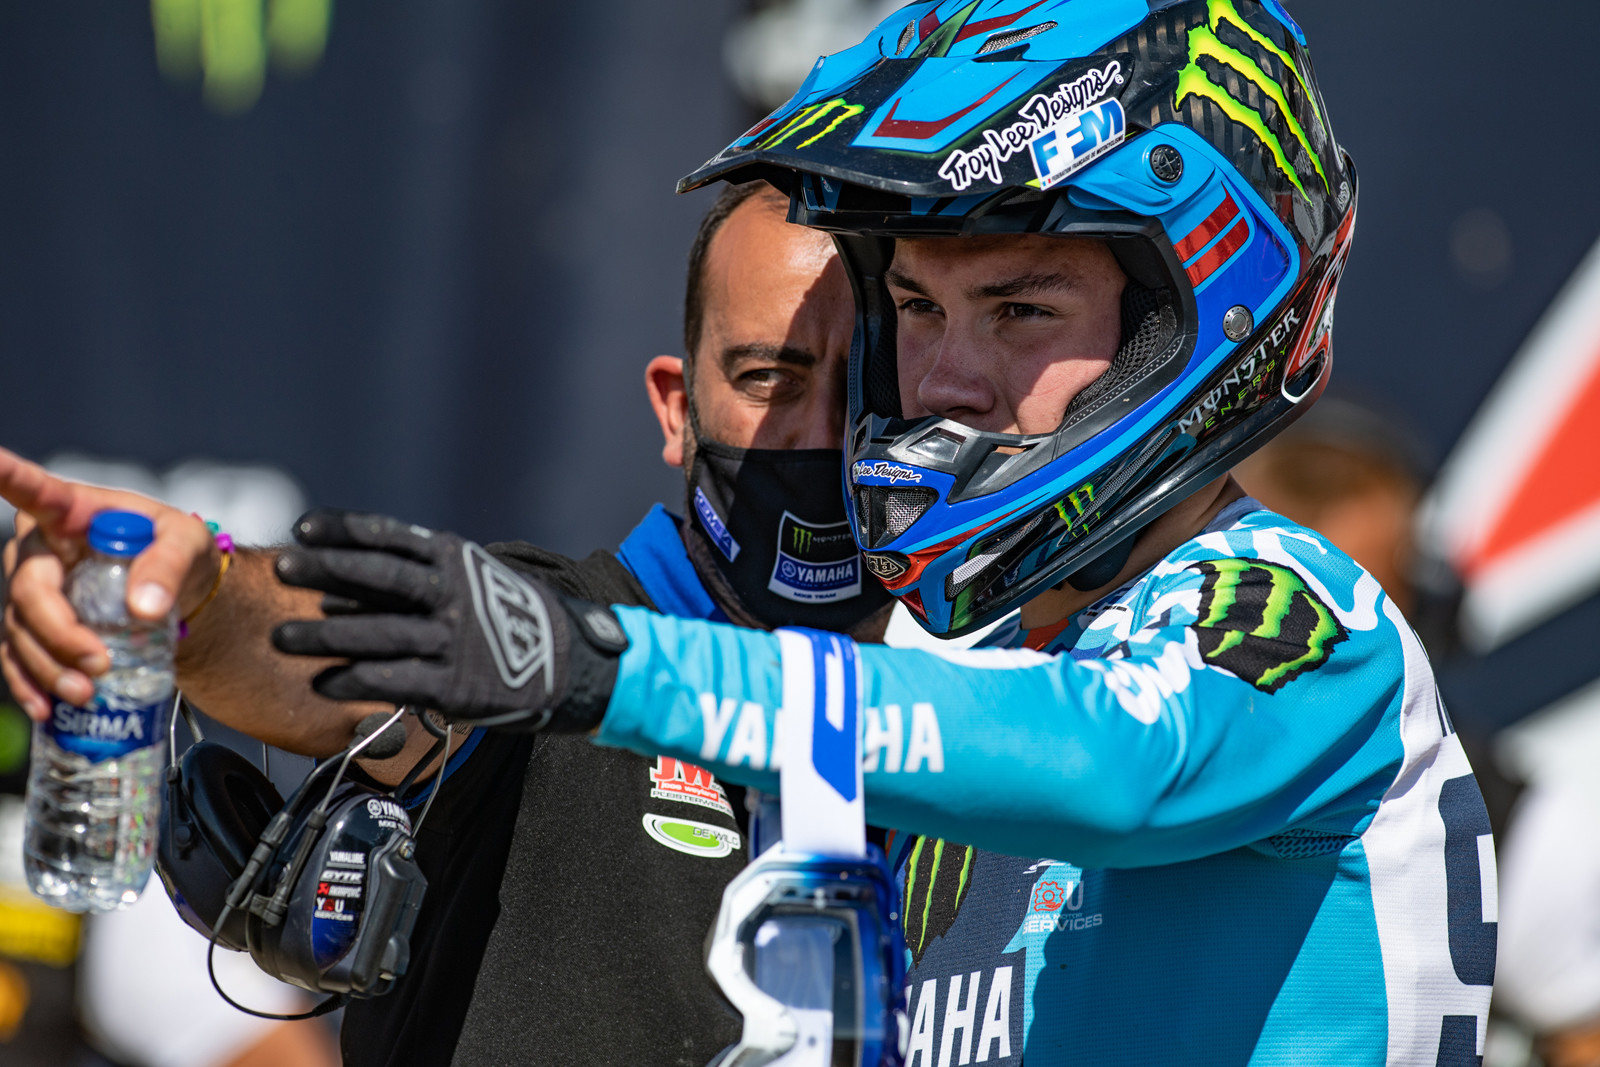 Maxime Renaux was able to keep his commanding points lead in the MX2 class with second overall.